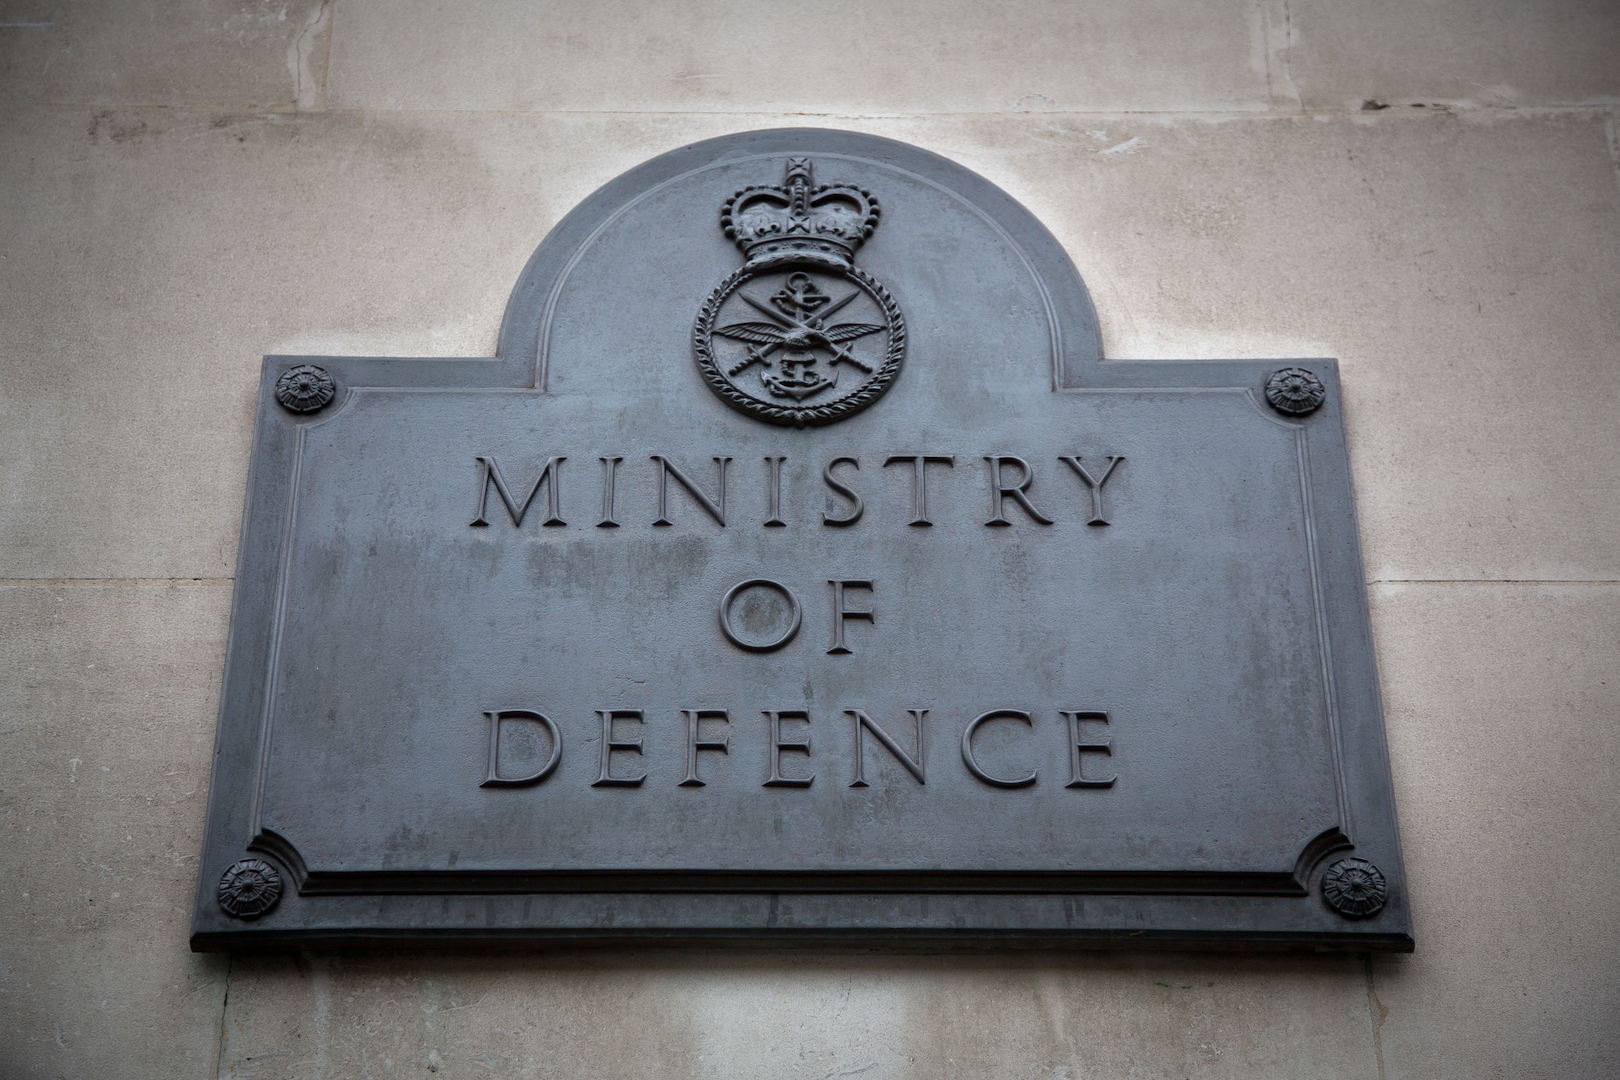 Ministry of Defence golf course scandal